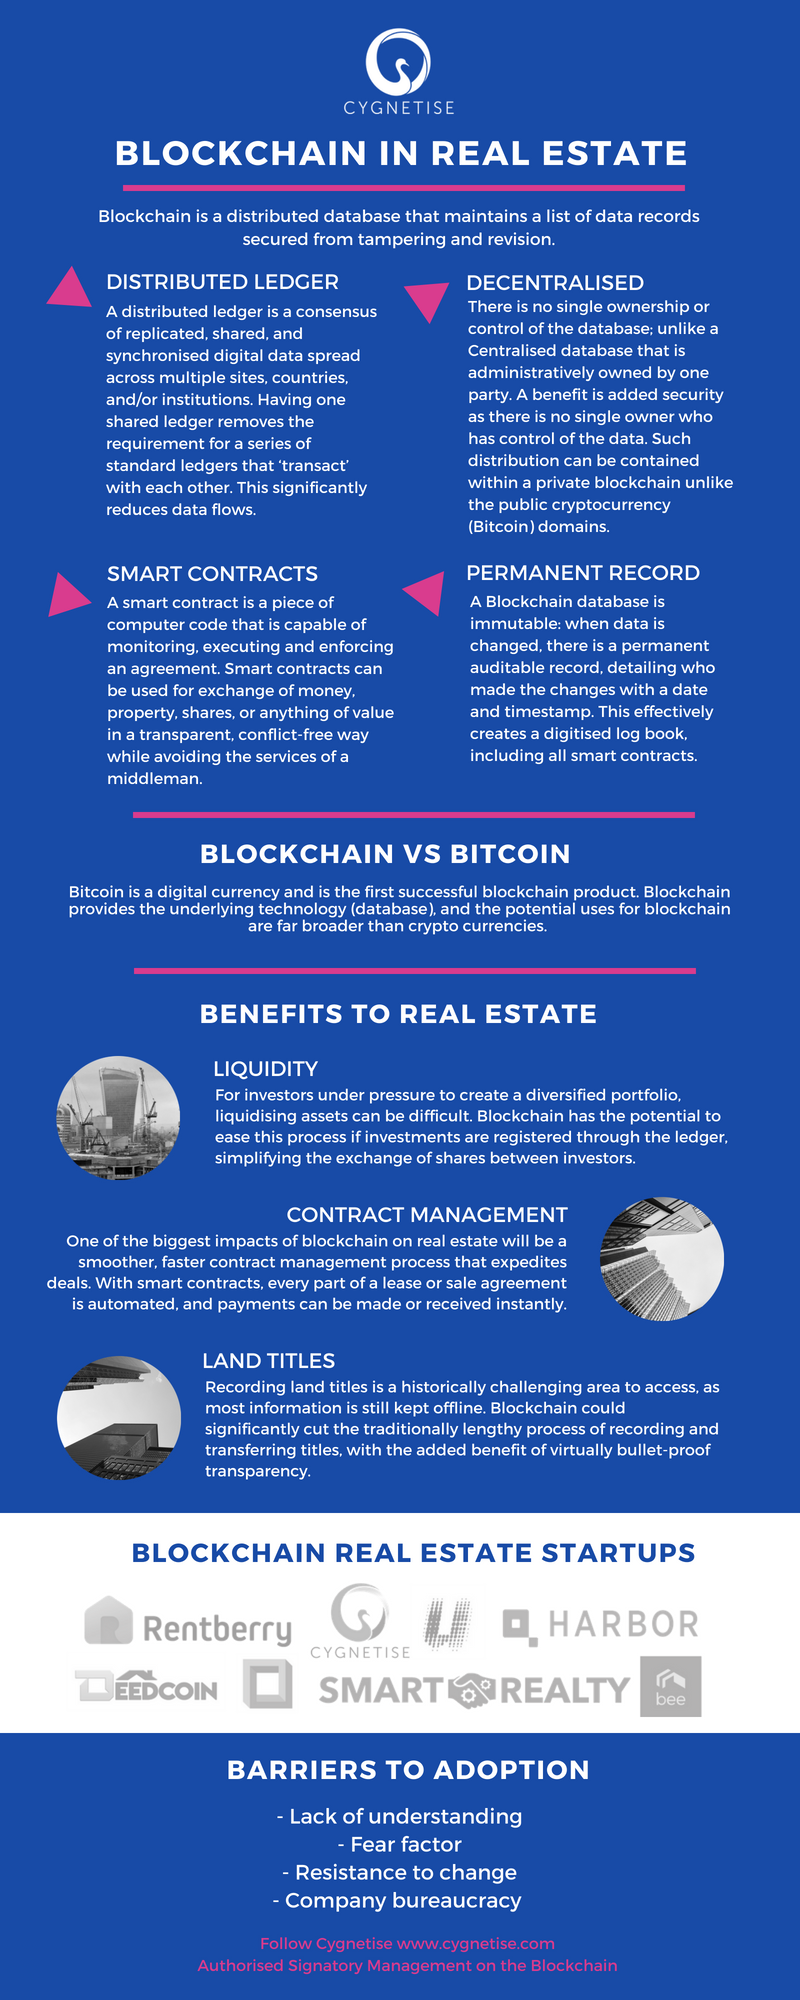 Cyg- Blockchain in real estate (1).png